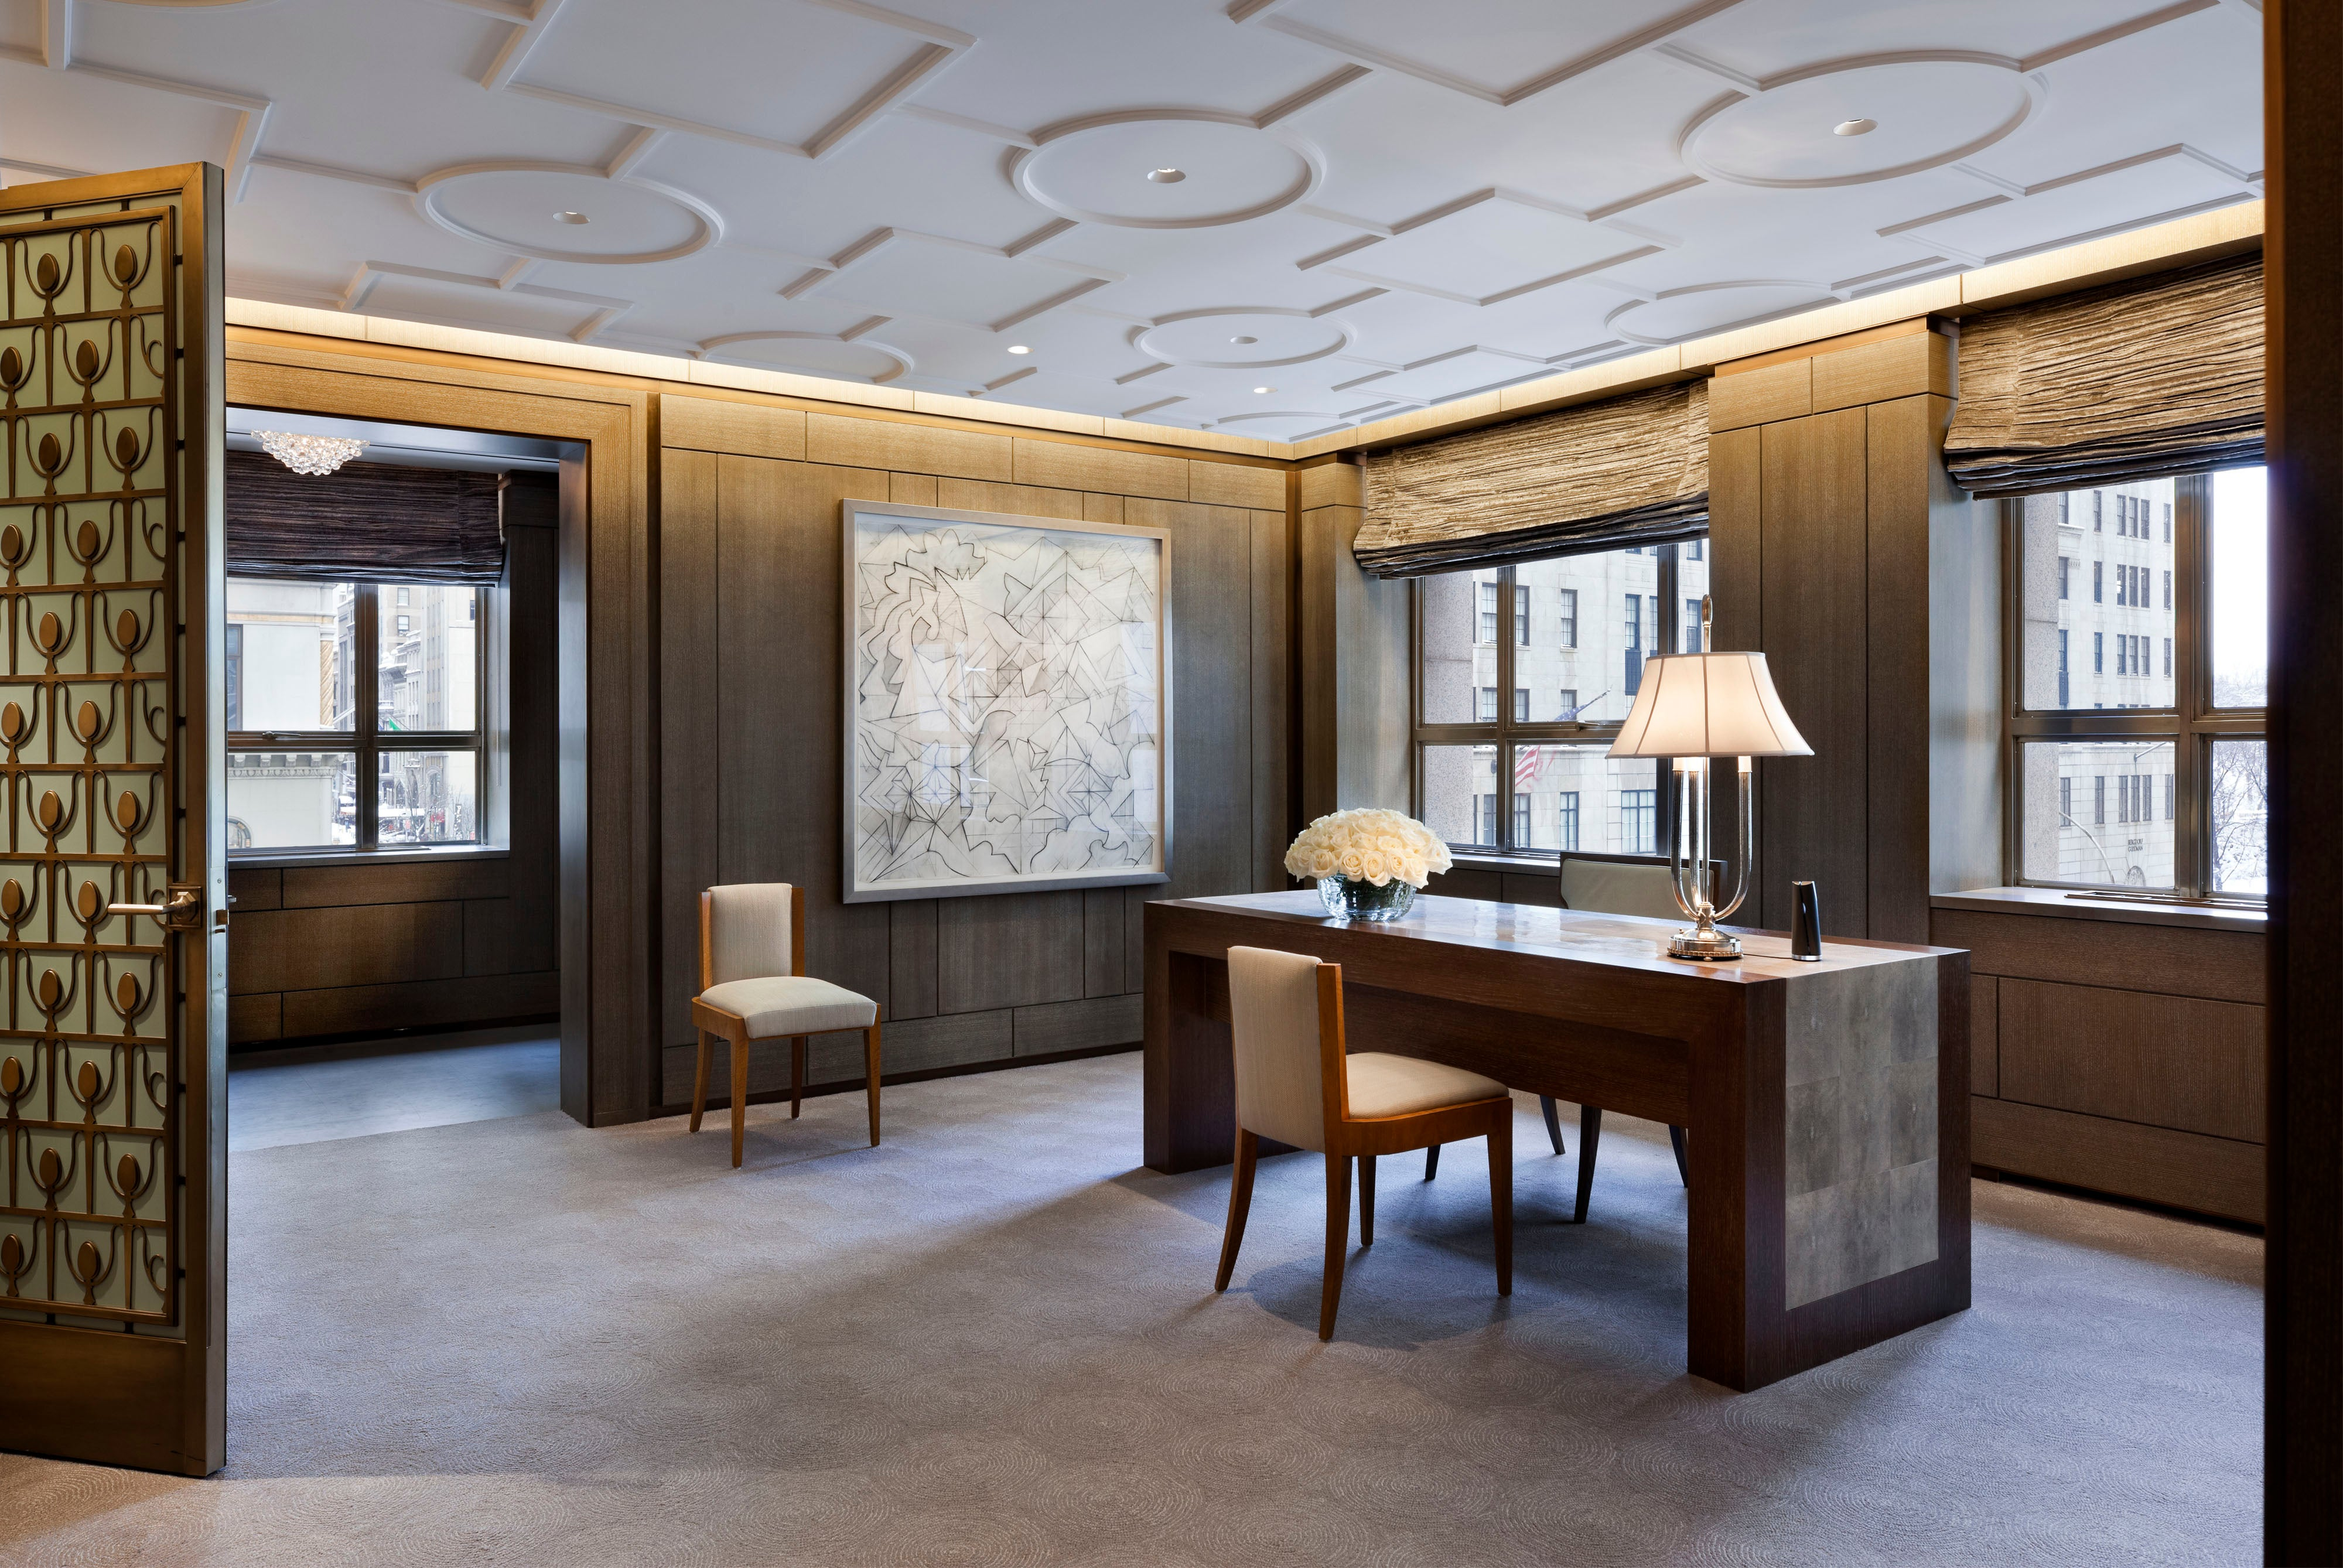 Tiffany Mezzanine Salon by Robert A.M. Stern Architects on 1stdibs